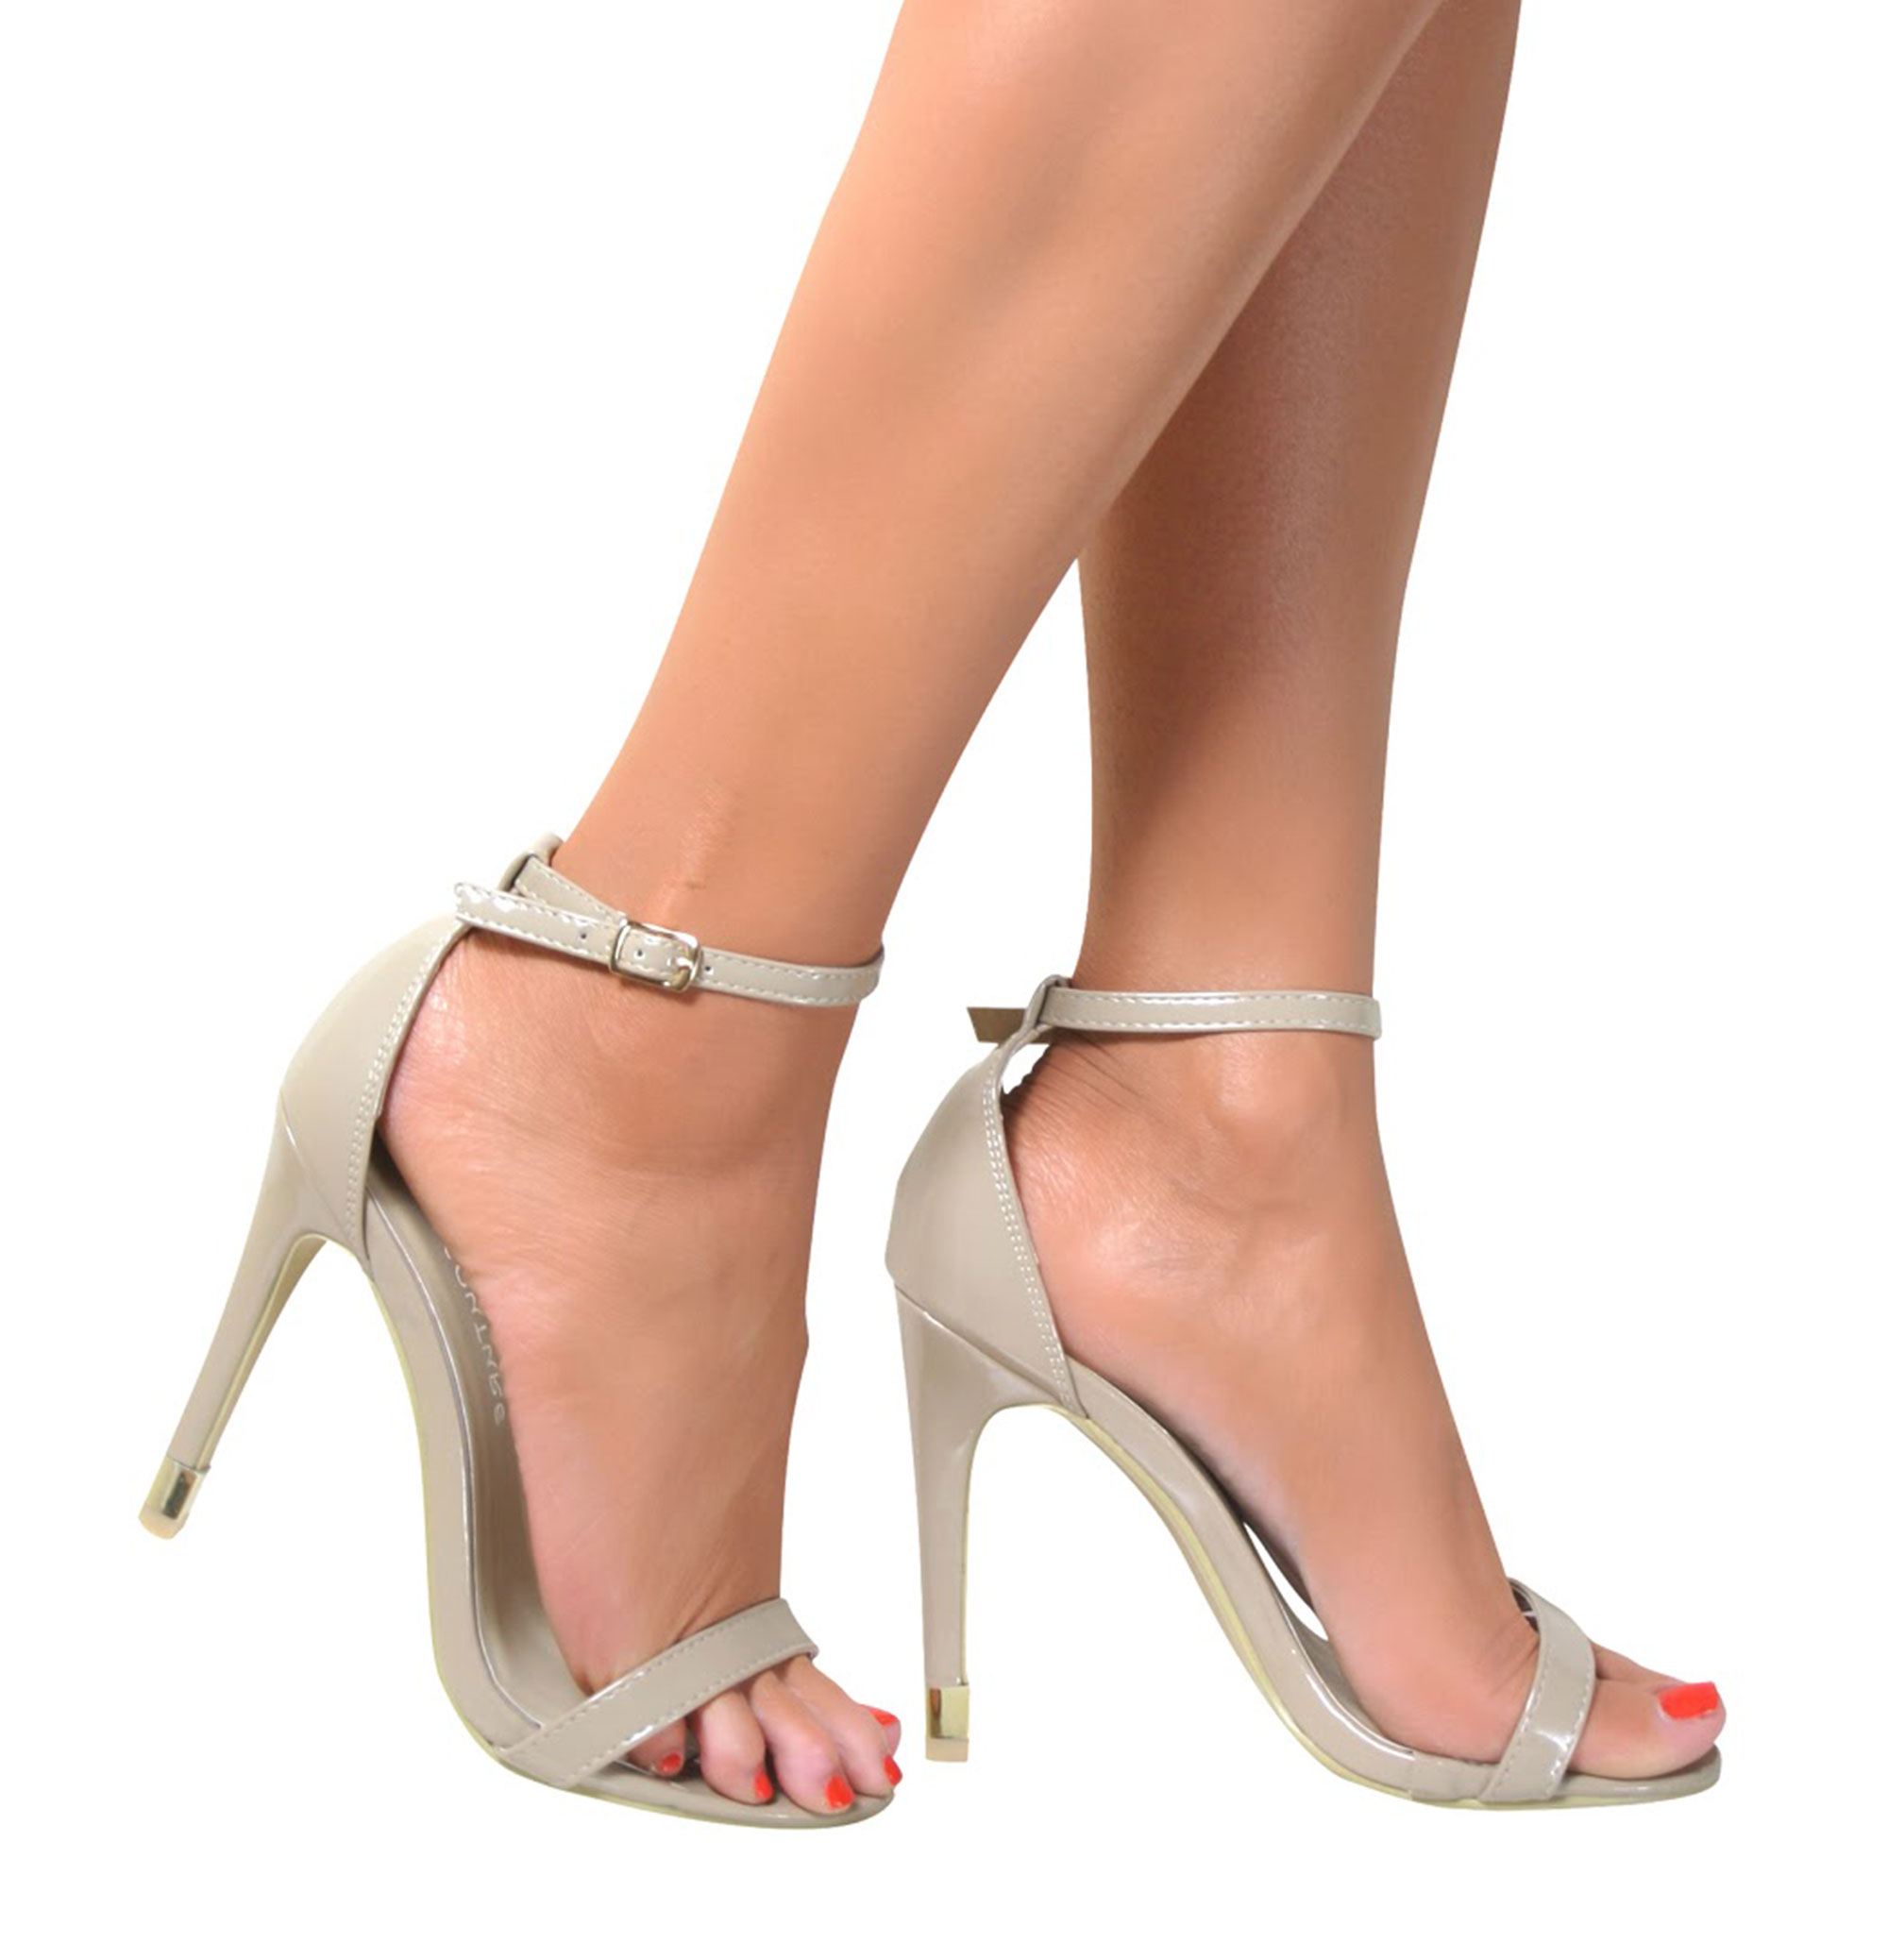 You searched for: shoes heels cuff! Etsy is the home to thousands of handmade, vintage, and one-of-a-kind products and gifts related to your search. No matter what you're looking for or where you are in the world, our global marketplace of sellers can help you find unique and affordable options.